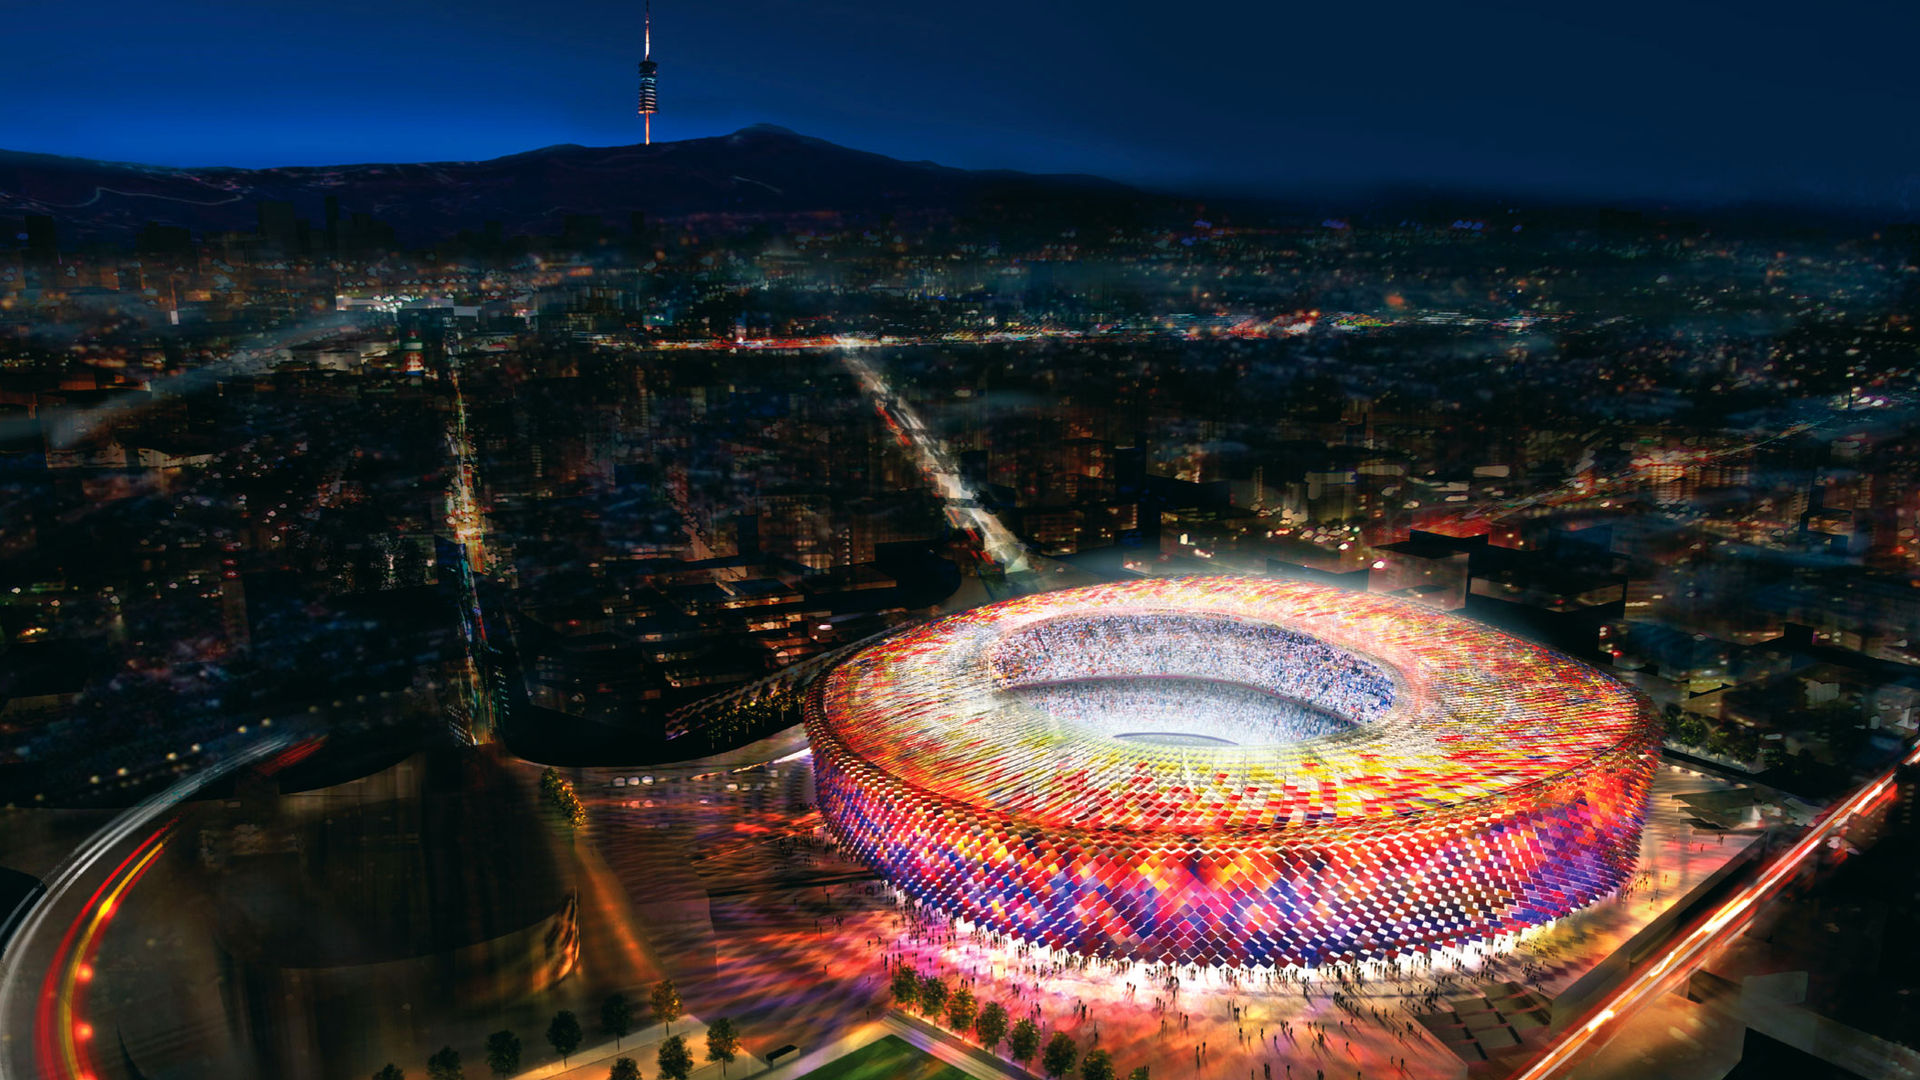 Camp nou at night, Barcelona